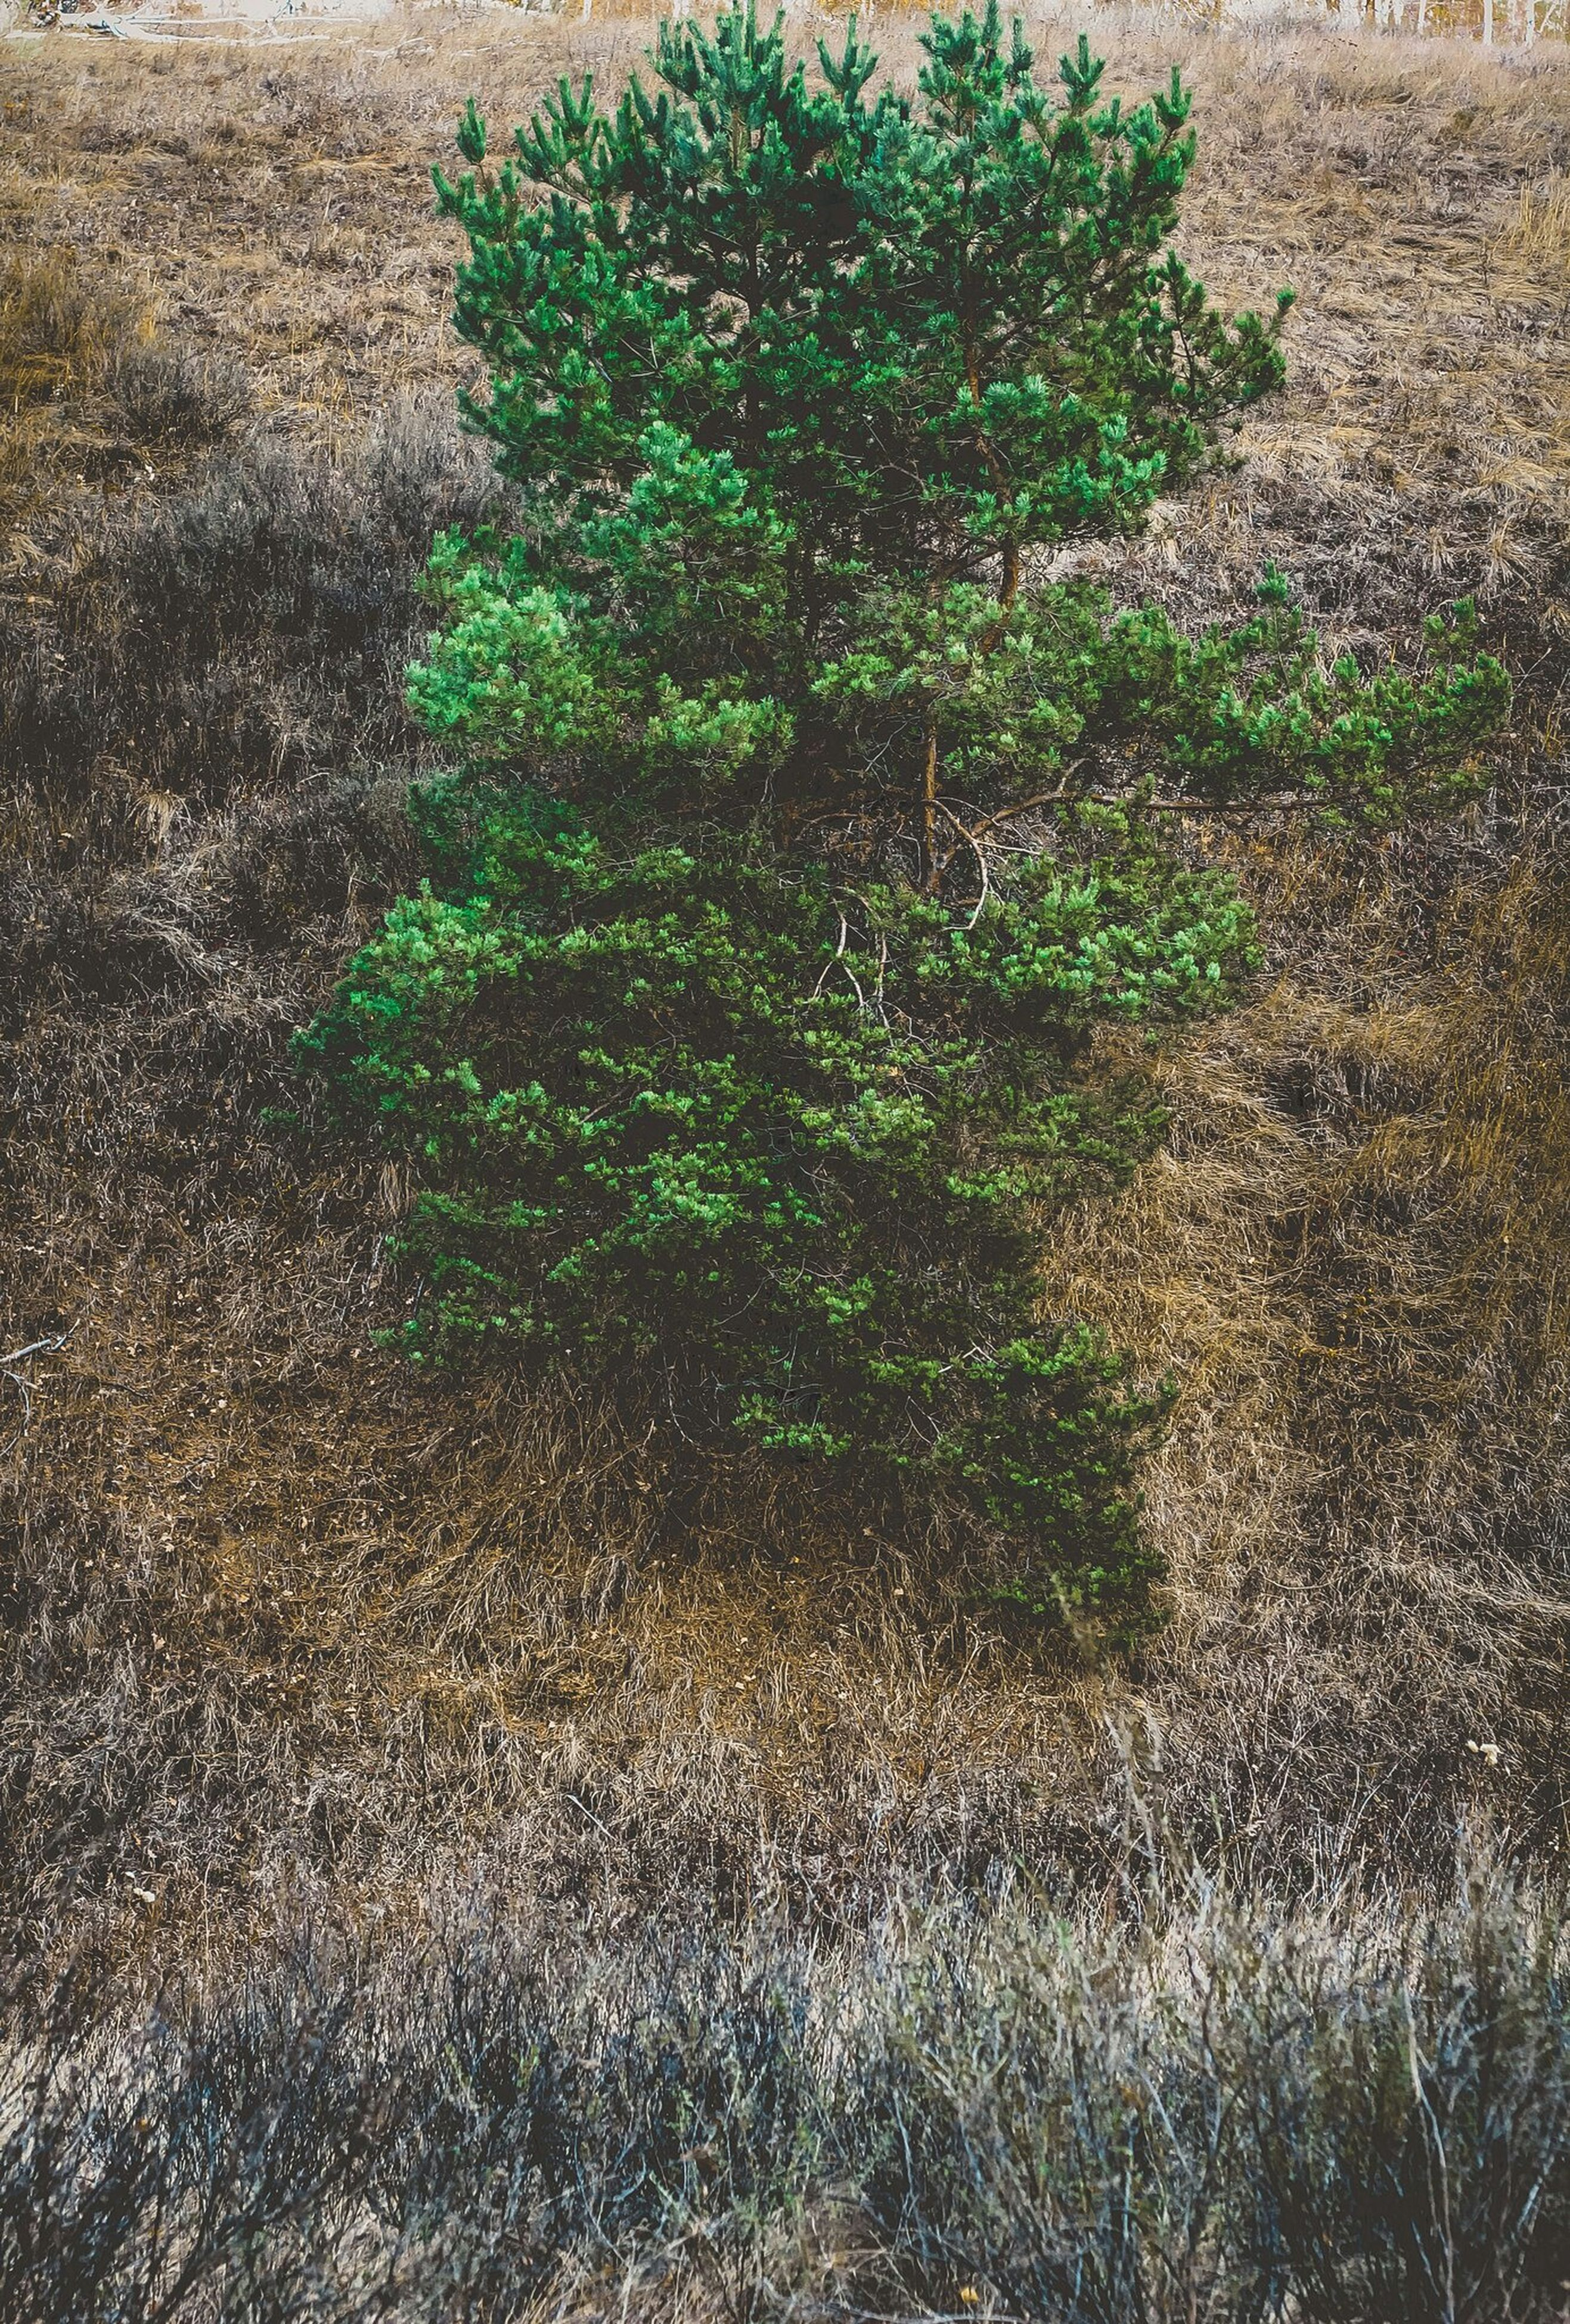 growth, green color, high angle view, plant, grass, nature, field, sunlight, tranquility, day, outdoors, growing, no people, beauty in nature, tree, shadow, leaf, park - man made space, grassy, footpath